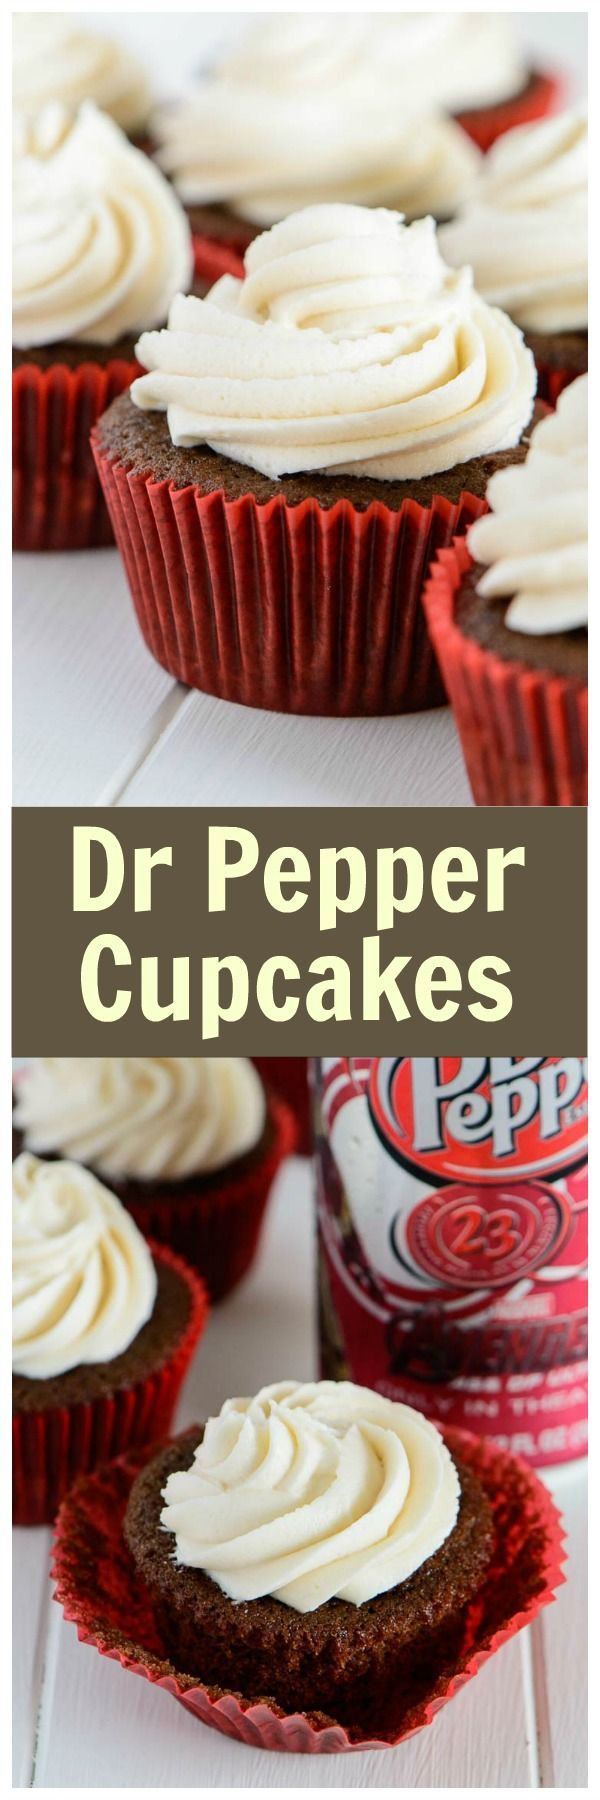 Fluffy and moist, these dr pepper cupcakes are my absolute favorite. The brown butter frosting takes them to a whole new level! | bakedbyanintrovert.com